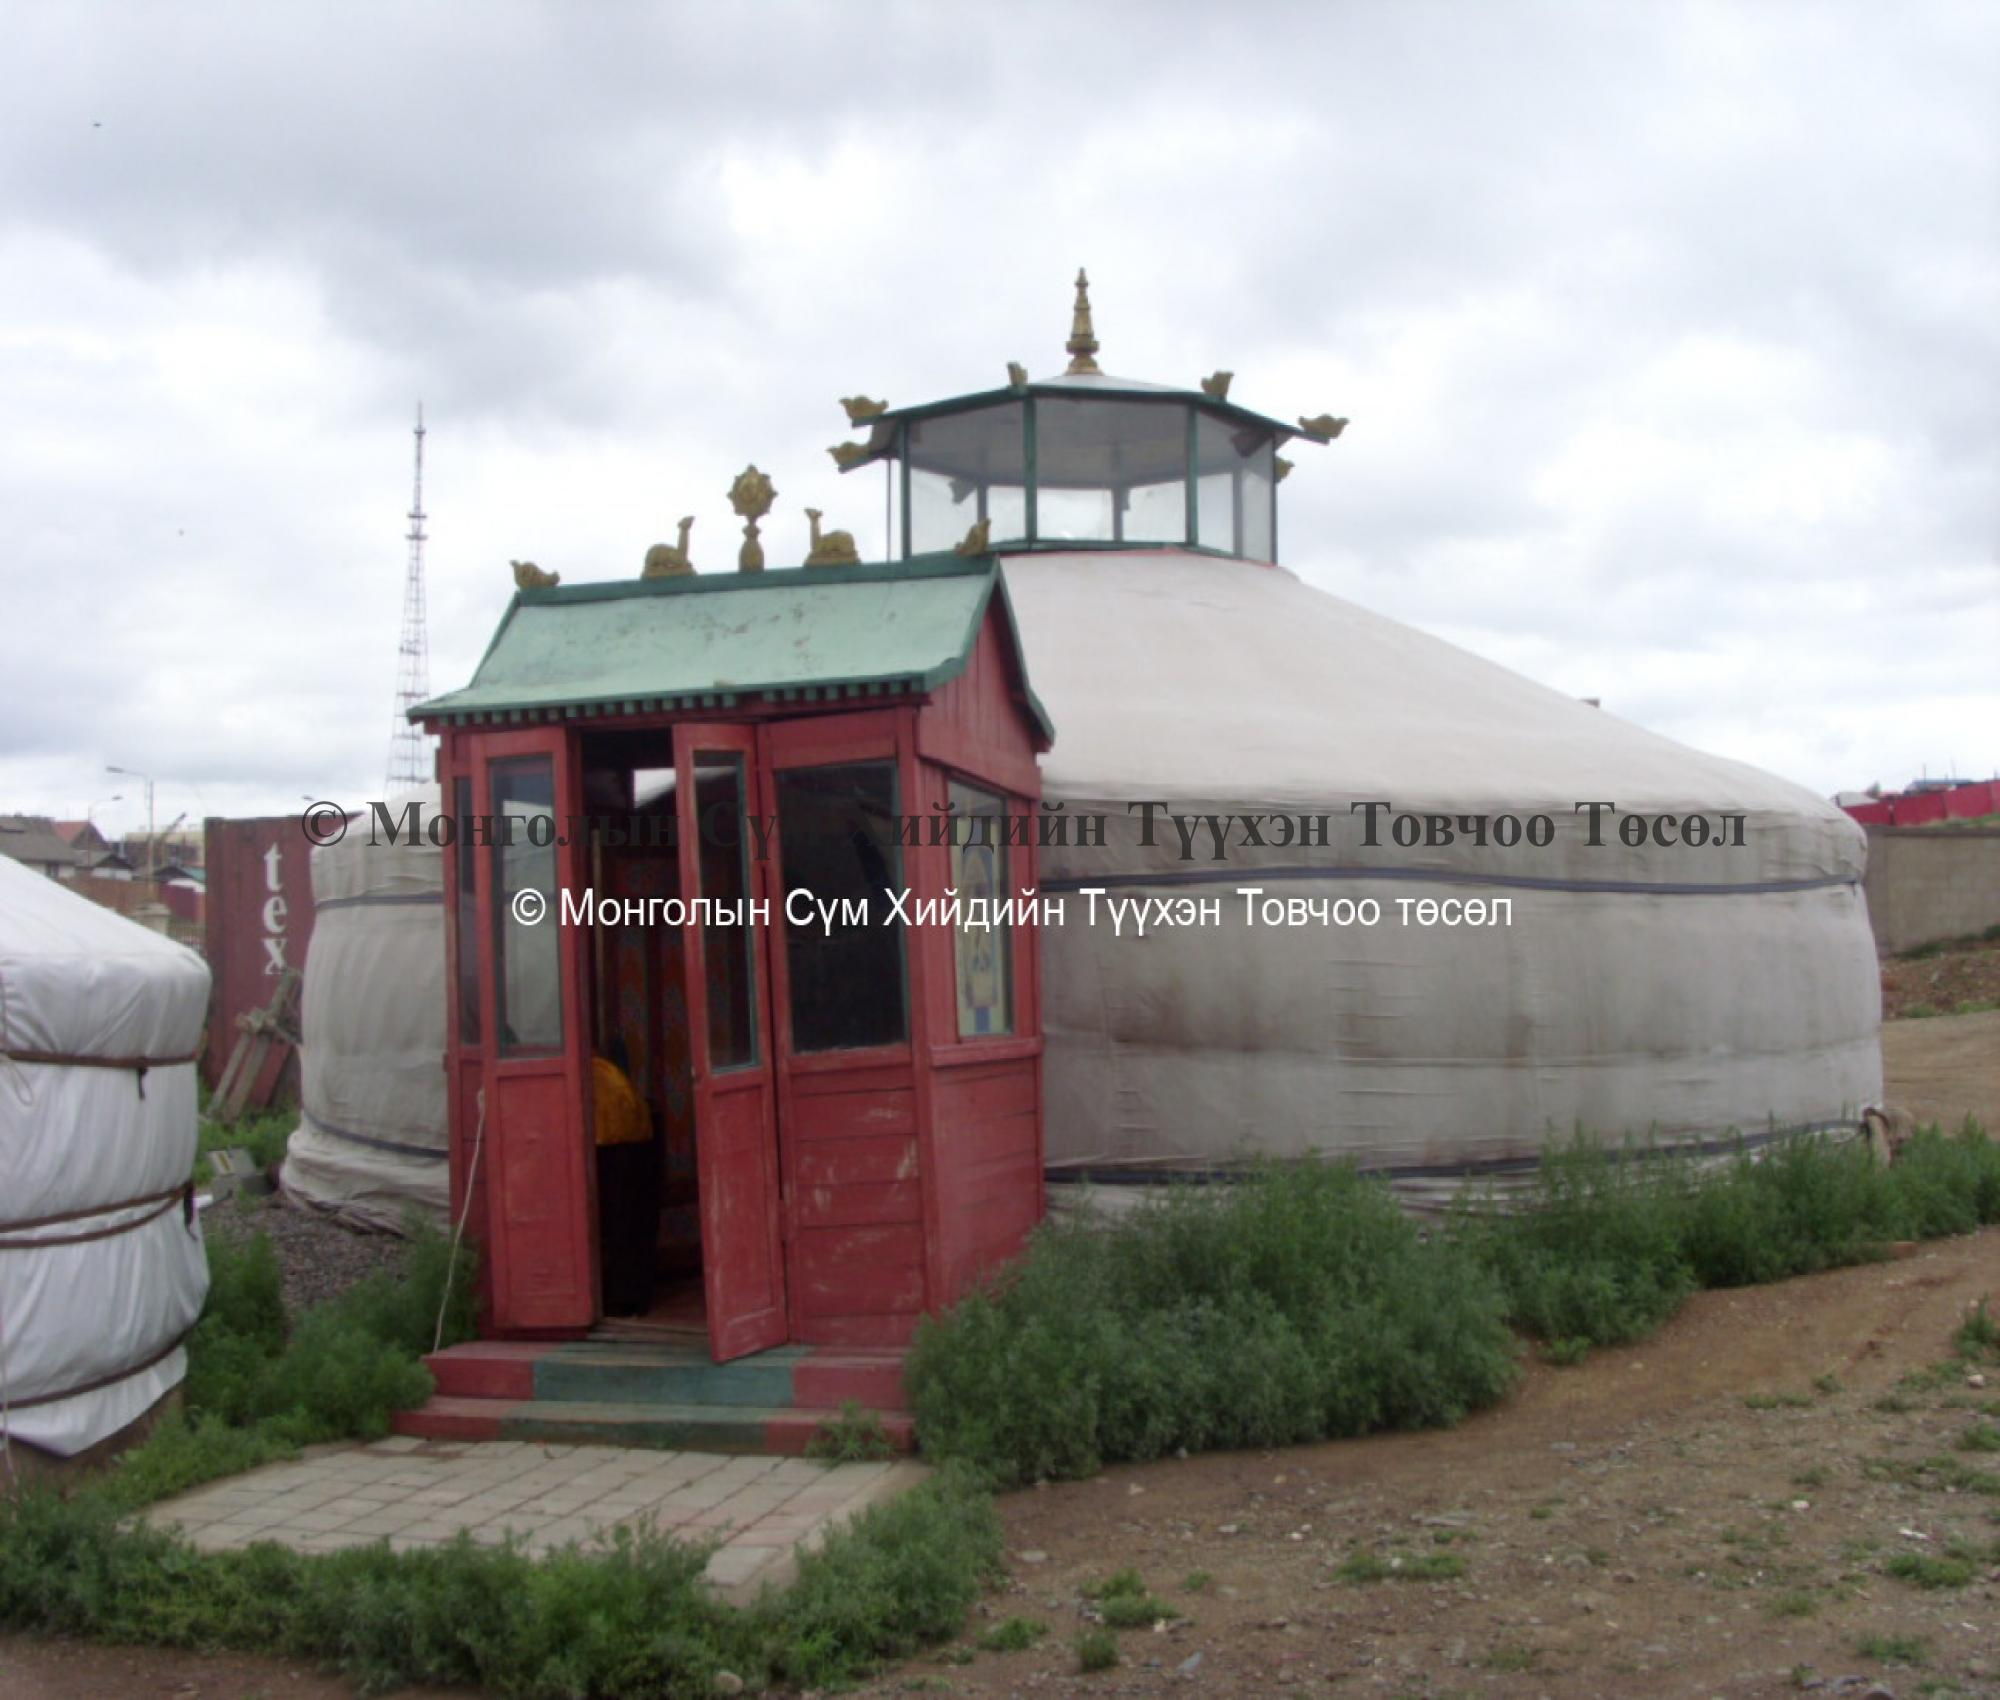 Yurt temple where ceremonies are held